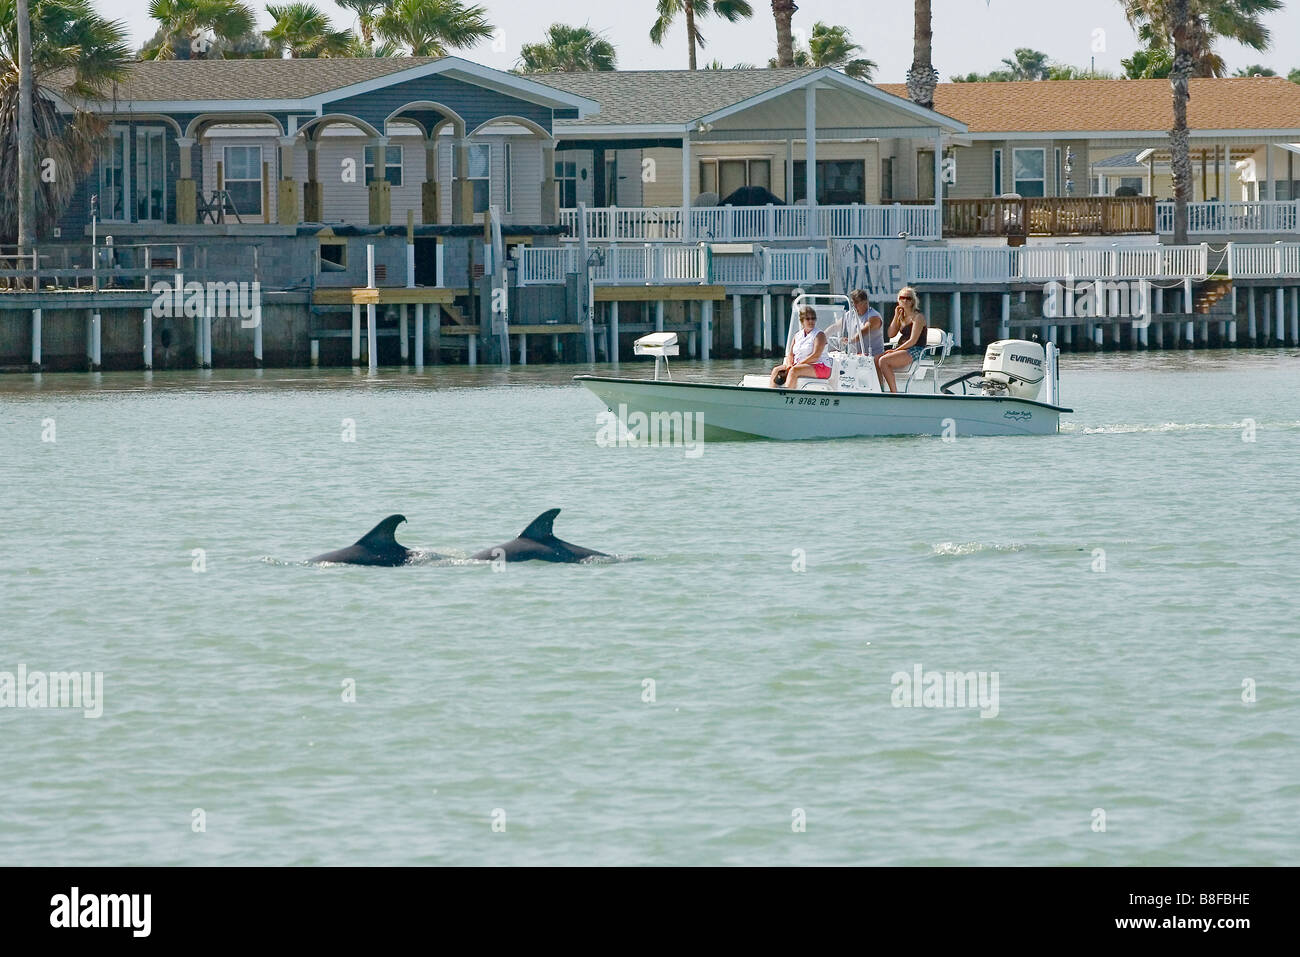 People watching Bottlenosed Dolphins from their boat. - Stock Image